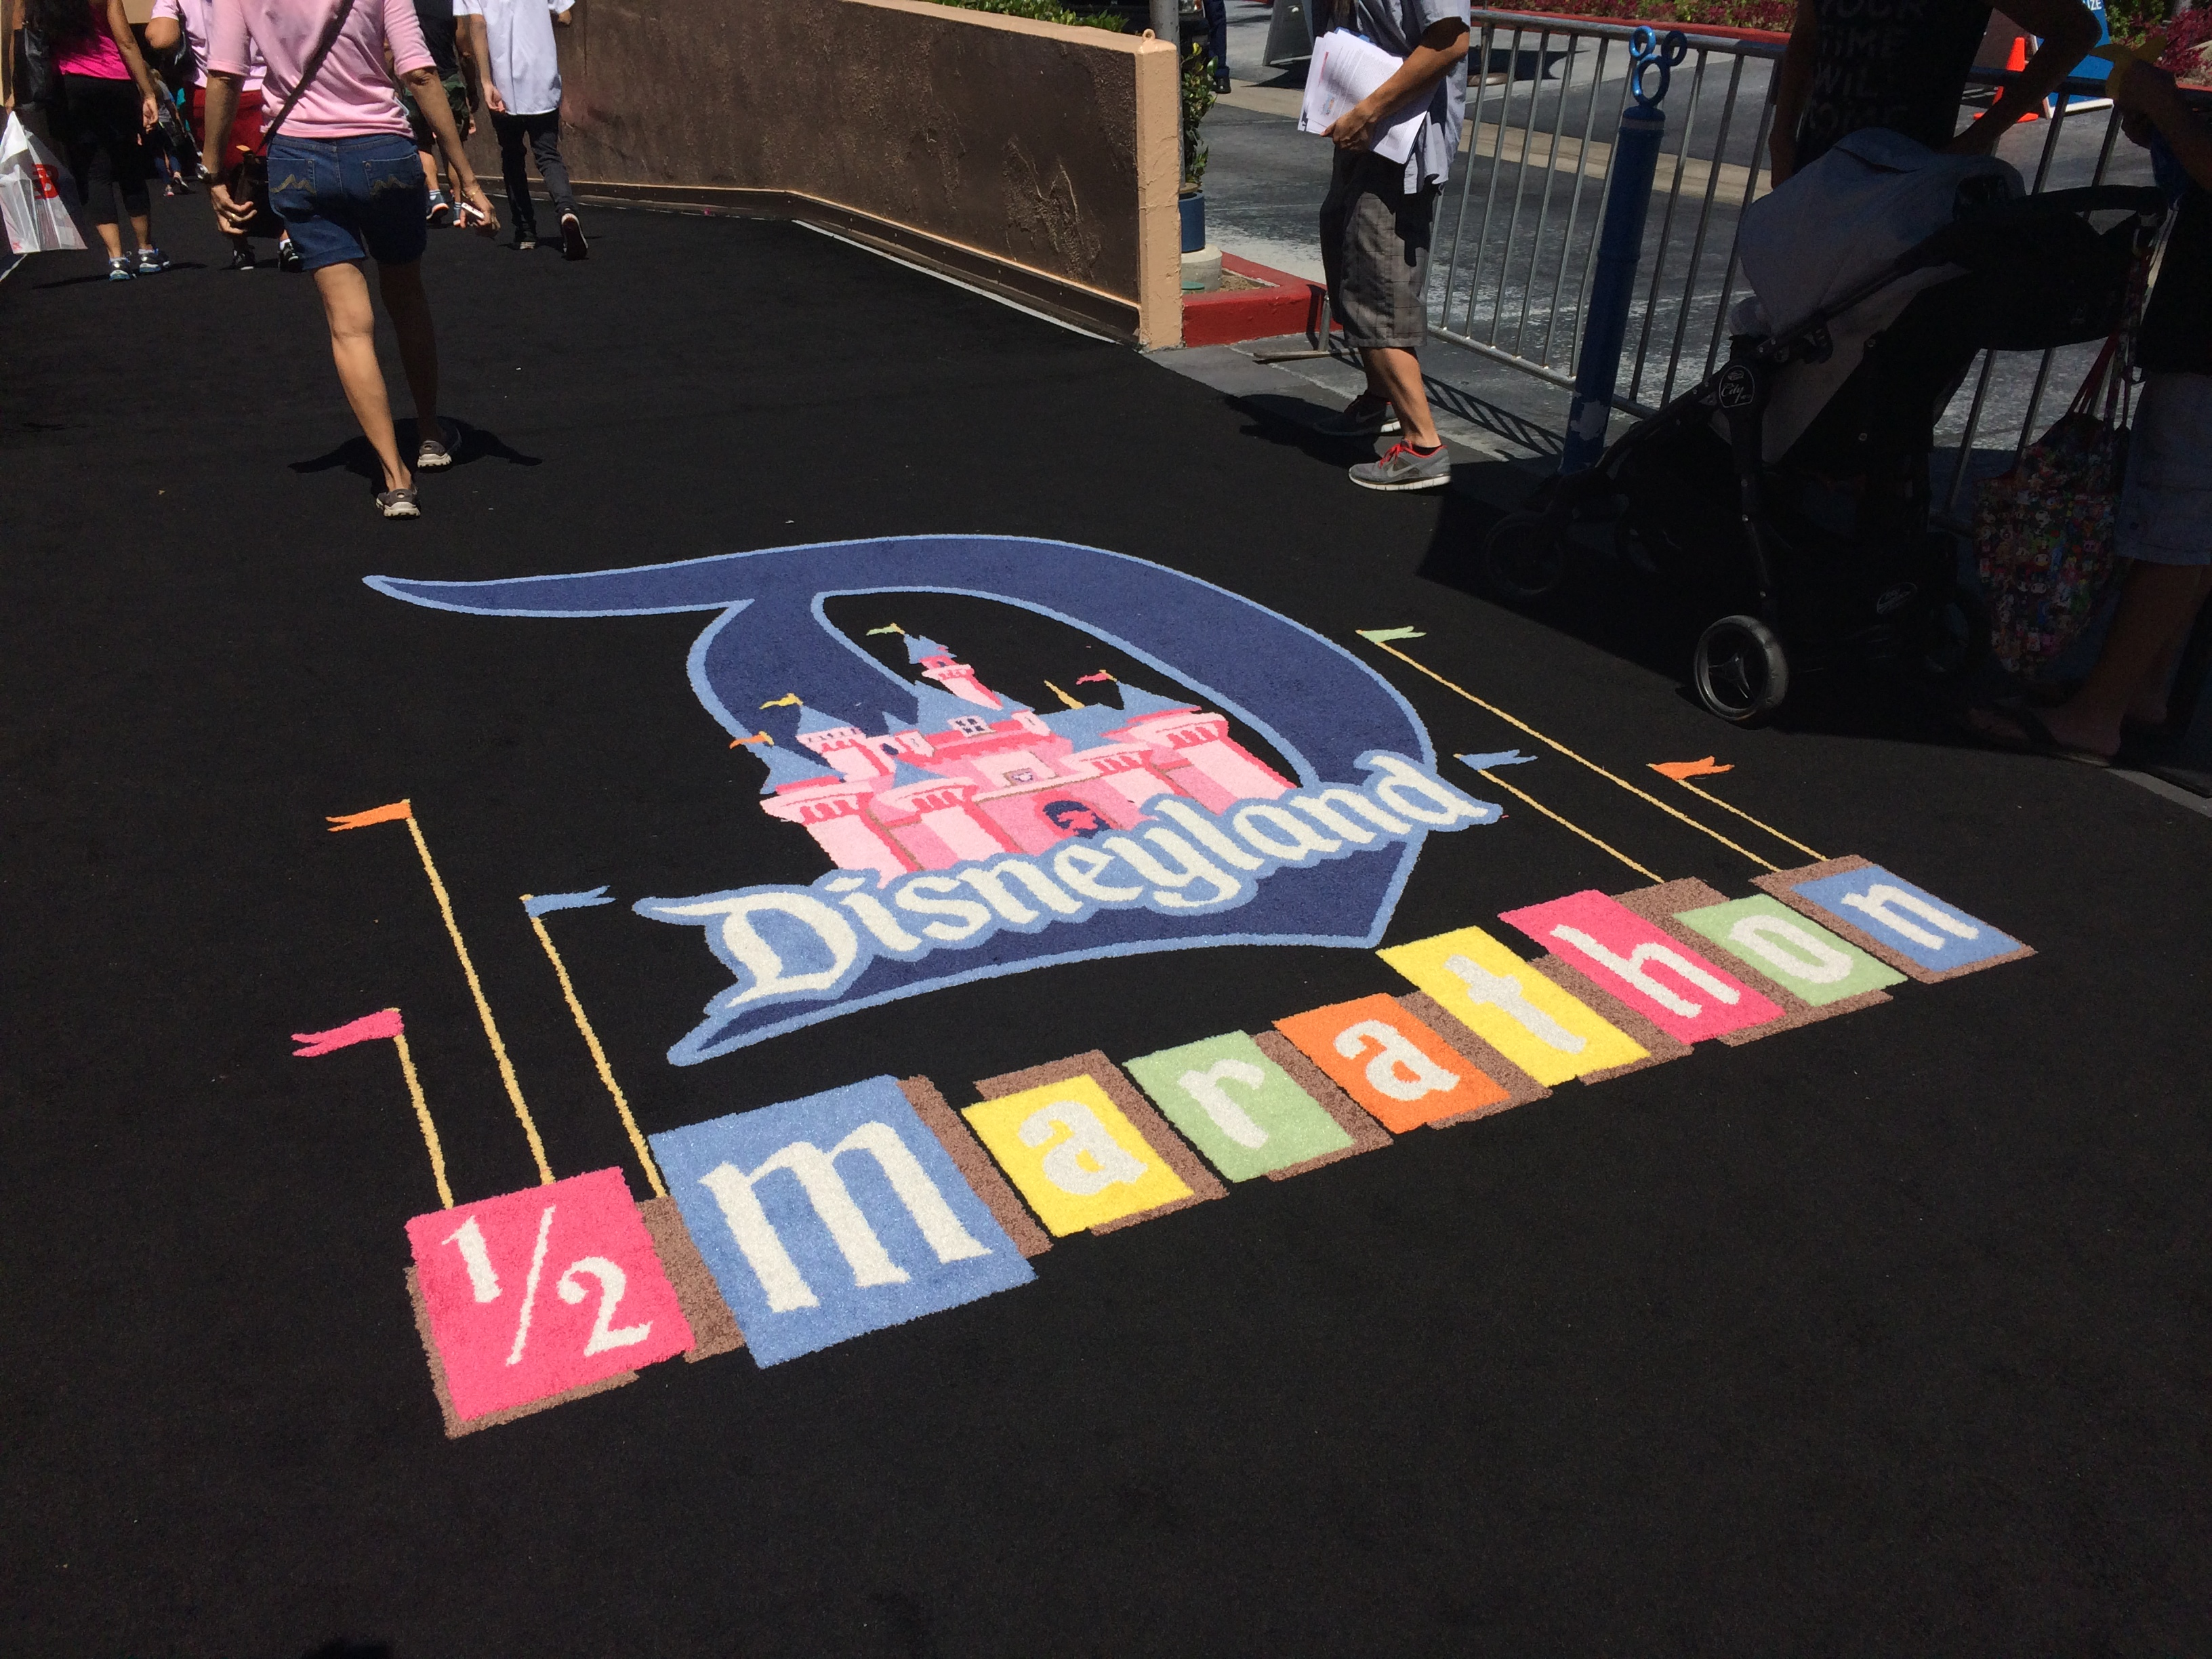 runDisney Disneyland Half Marathon & Dumbo Double Dare Preview & Tips